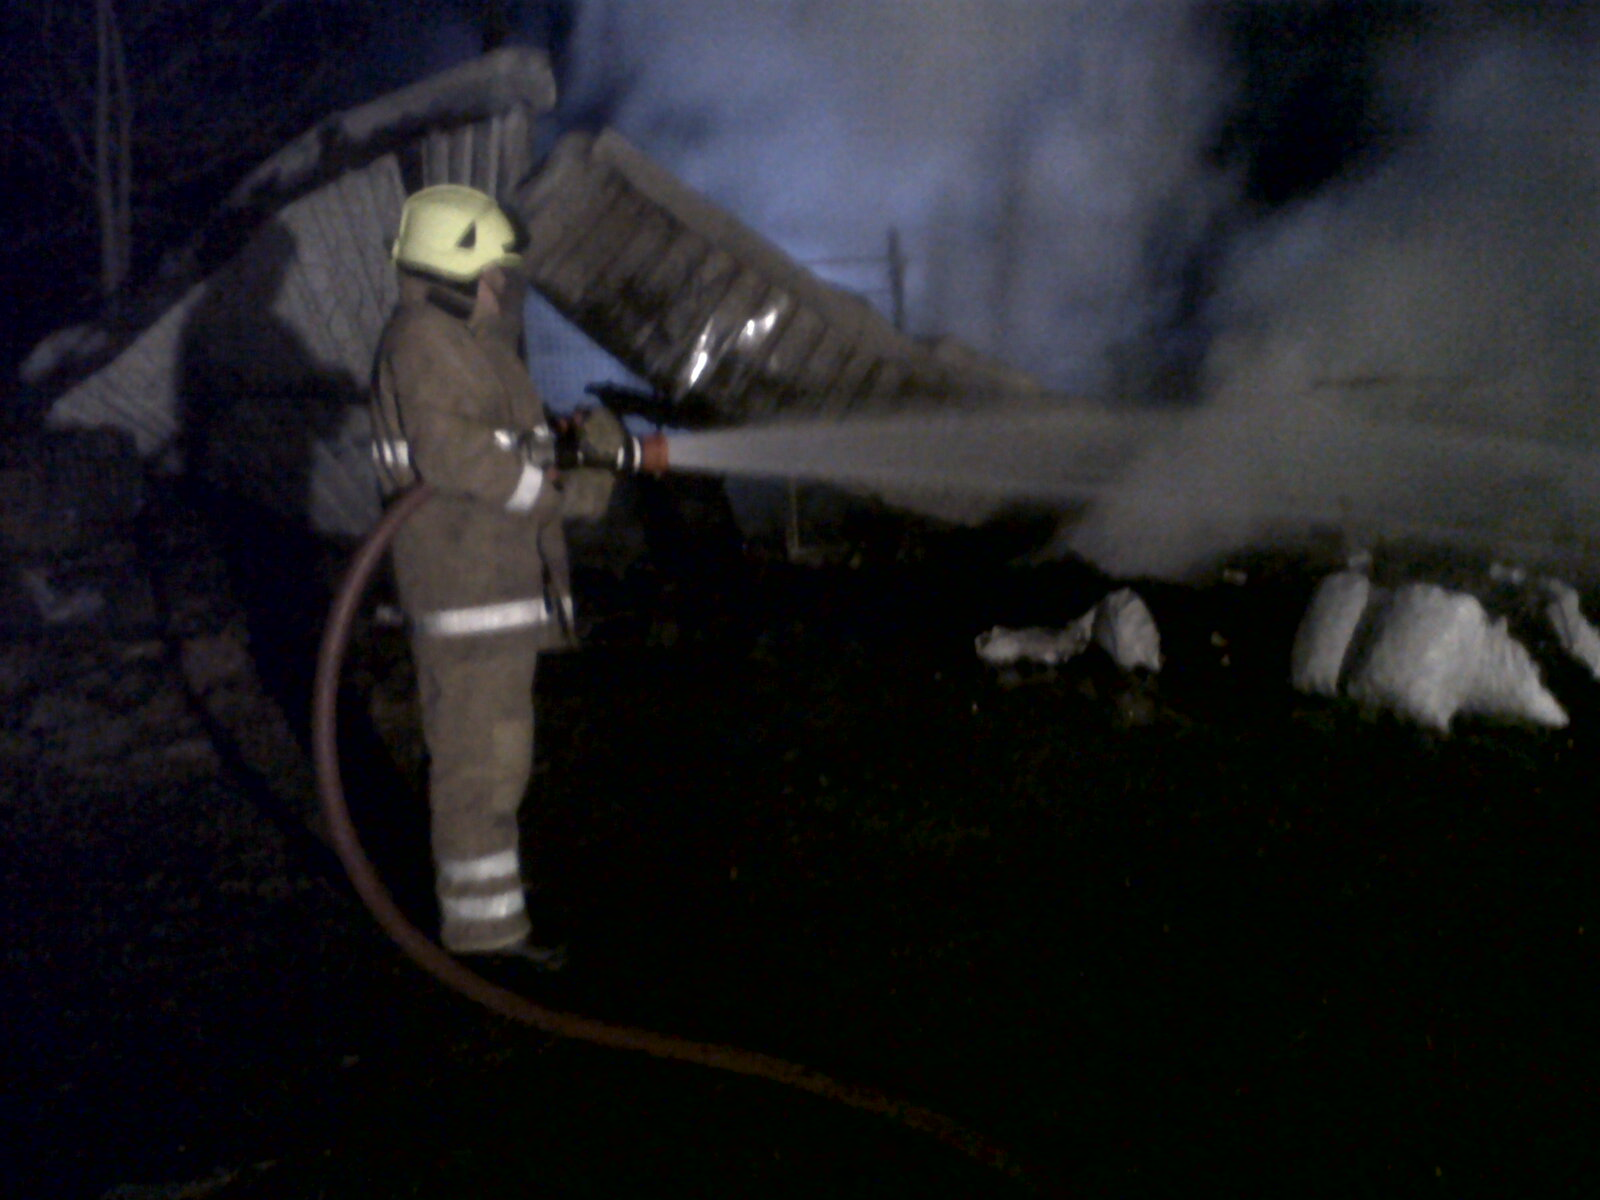 SFRS deal with large fire at Aberdeenshire farm